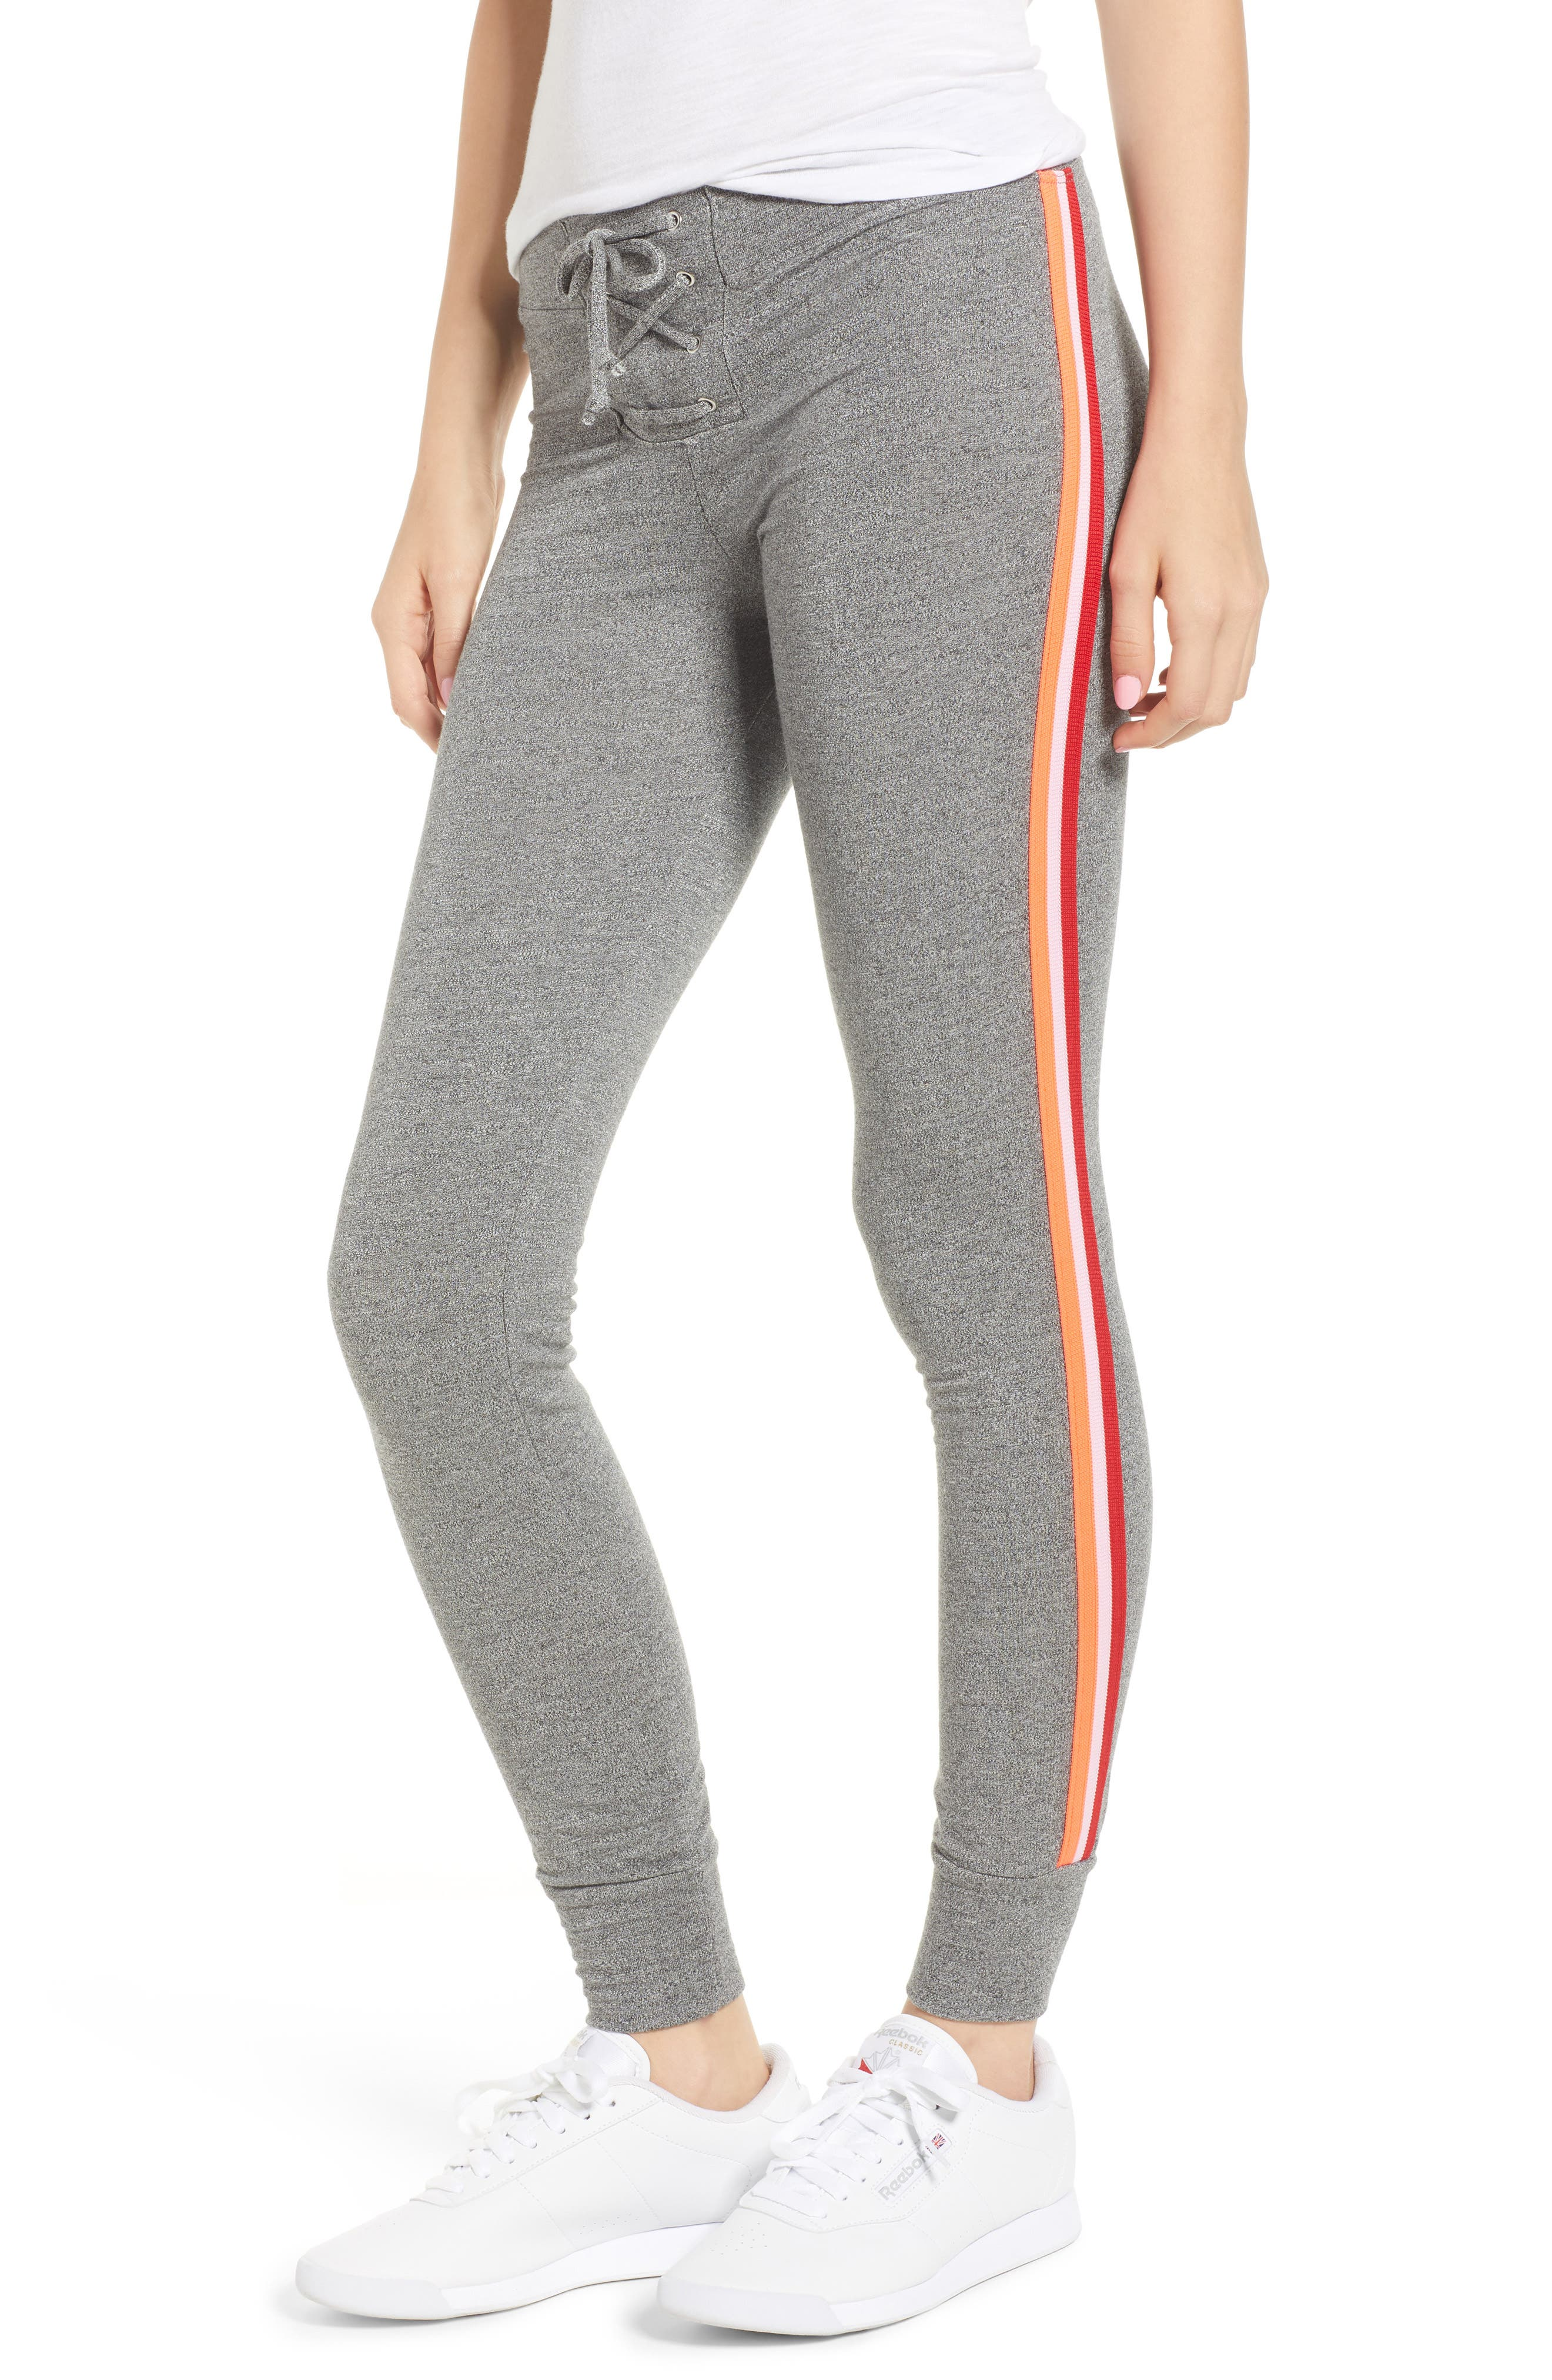 SUNDRY,                             Lace-Up Skinny Sweatpants,                             Main thumbnail 1, color,                             039